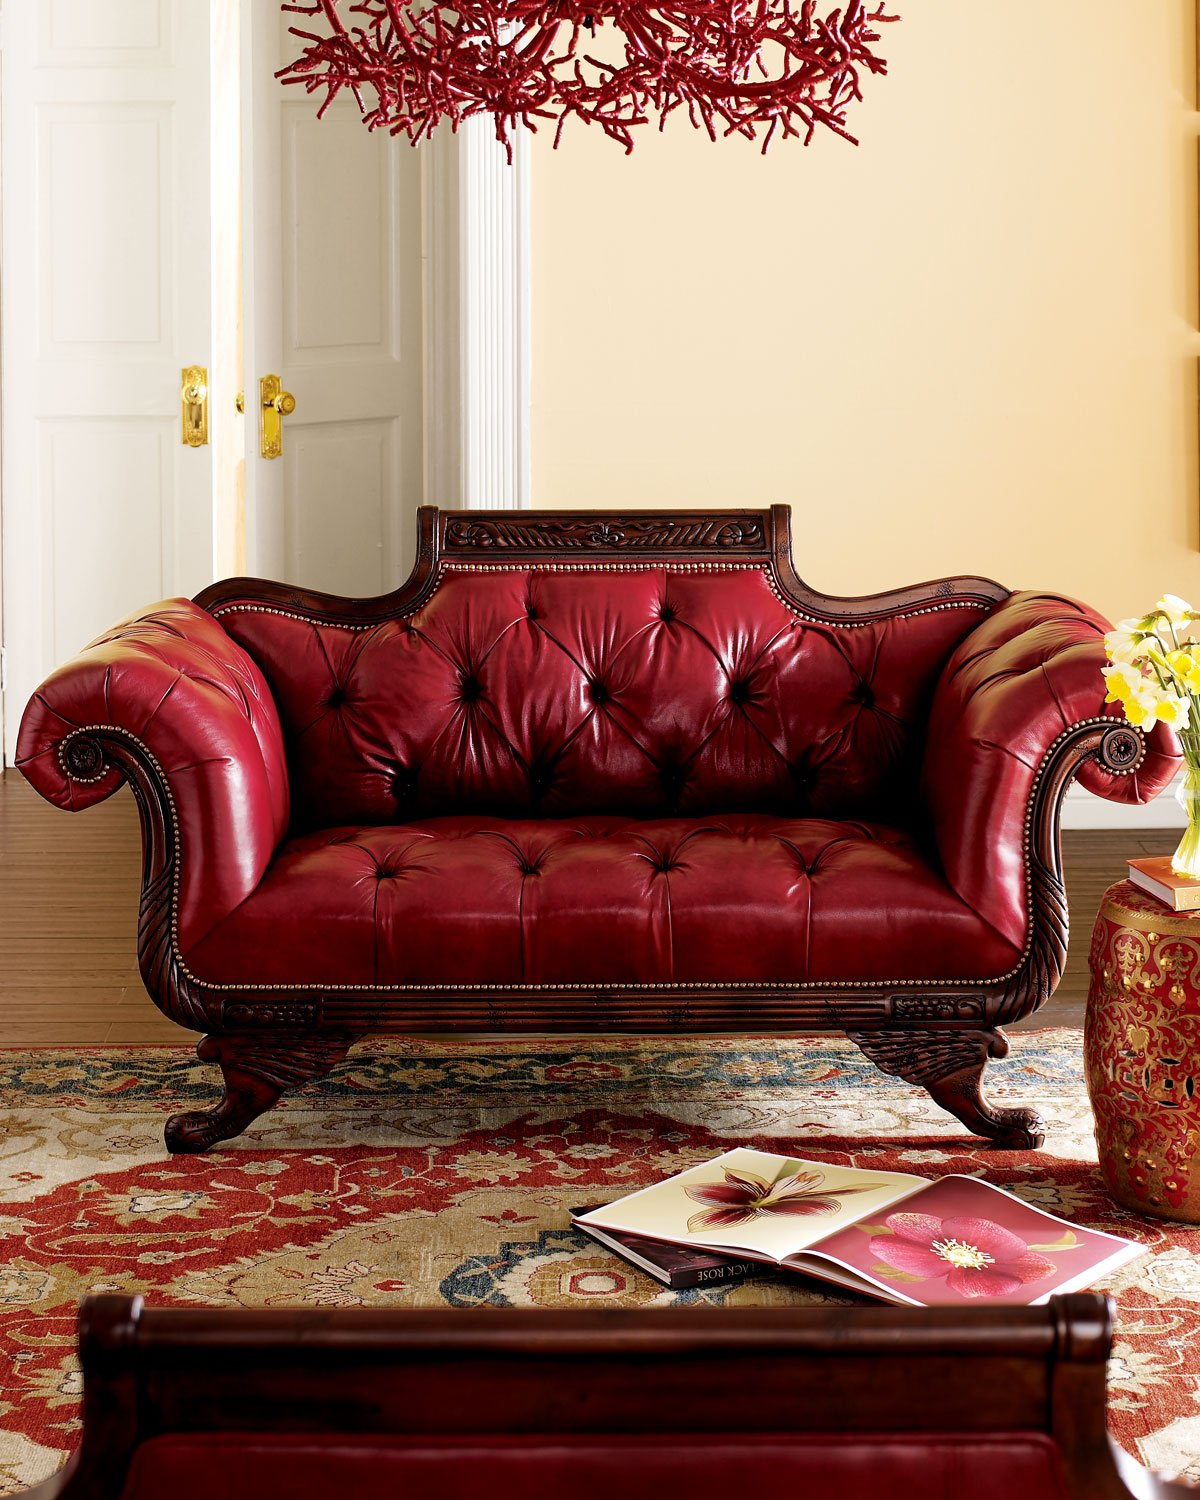 Awesome Old Hickory Tannery | Nice Old Hickory Sofas Idea